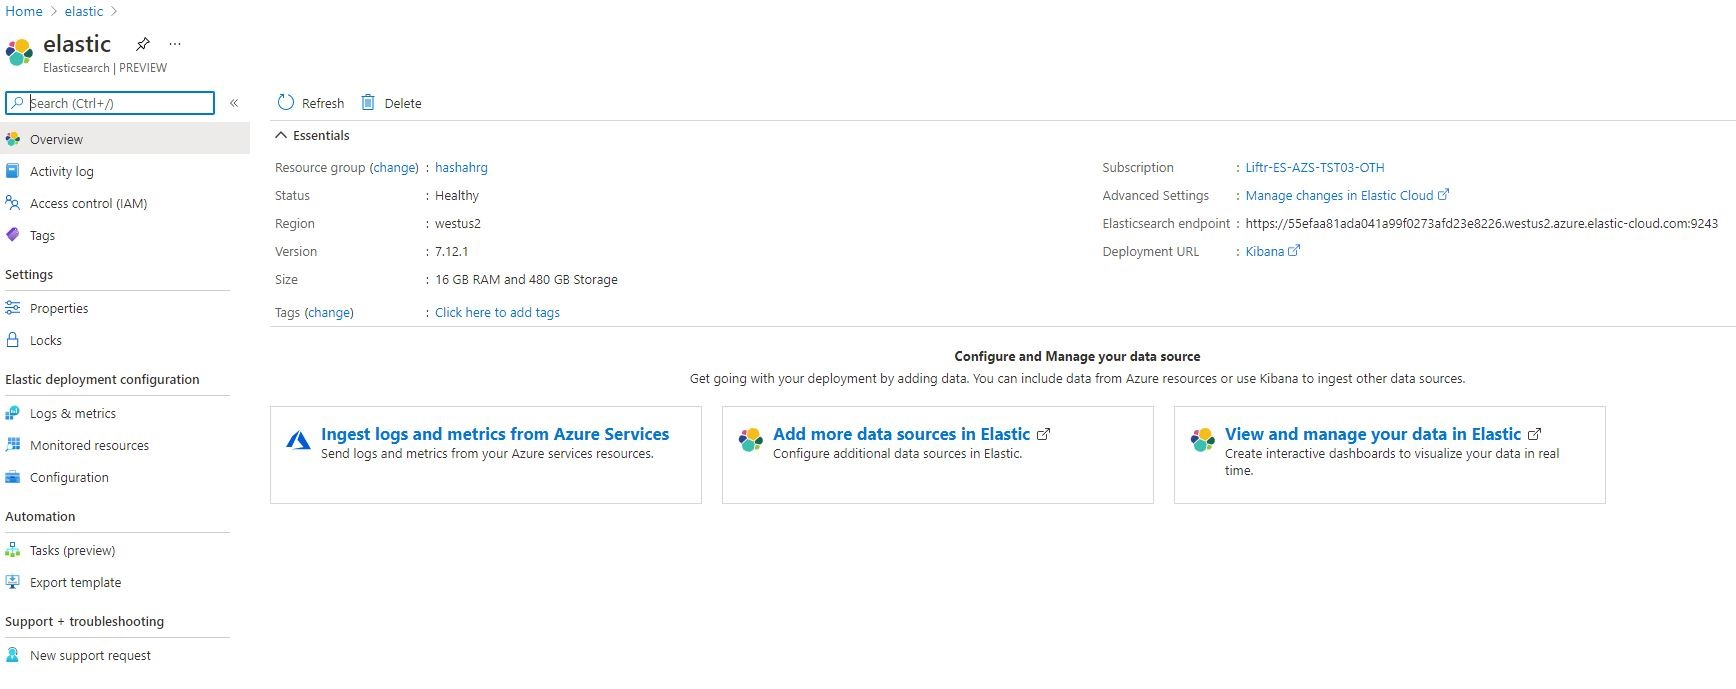 Integrated in Azure Portal Experience for Elastic service